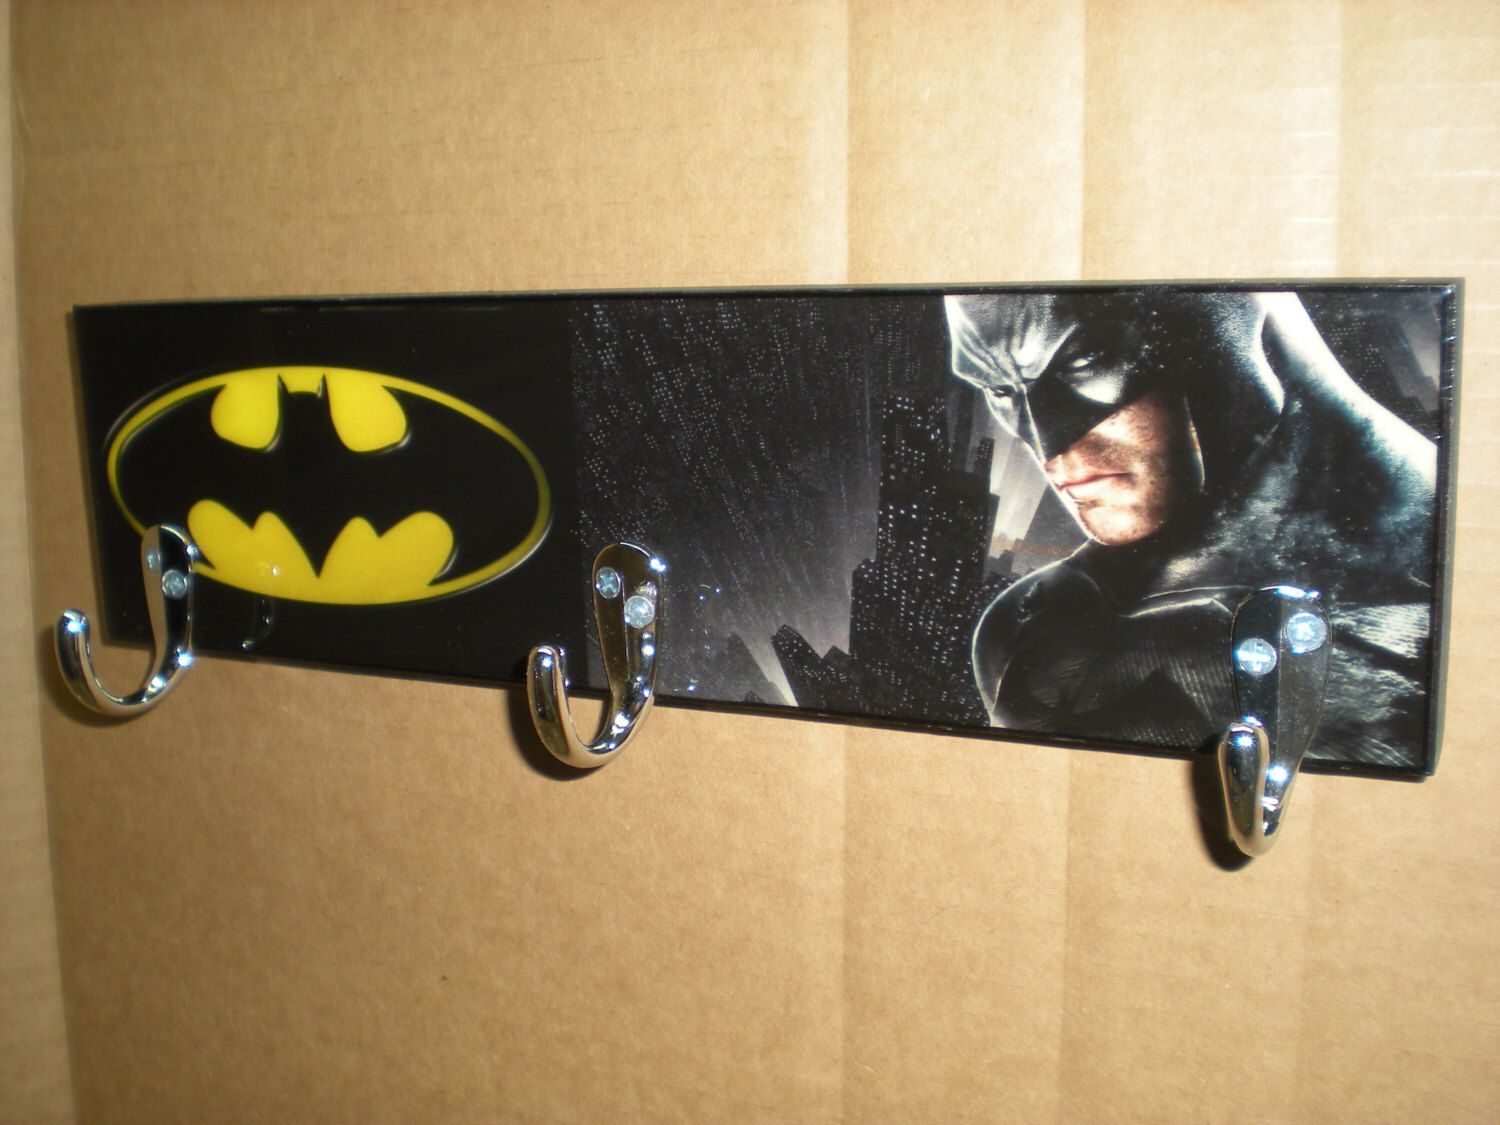 Batman coat rack batman sign super hero decor coat hooks batman coat rack batman sign super hero decor coat hooks batman wall amipublicfo Image collections